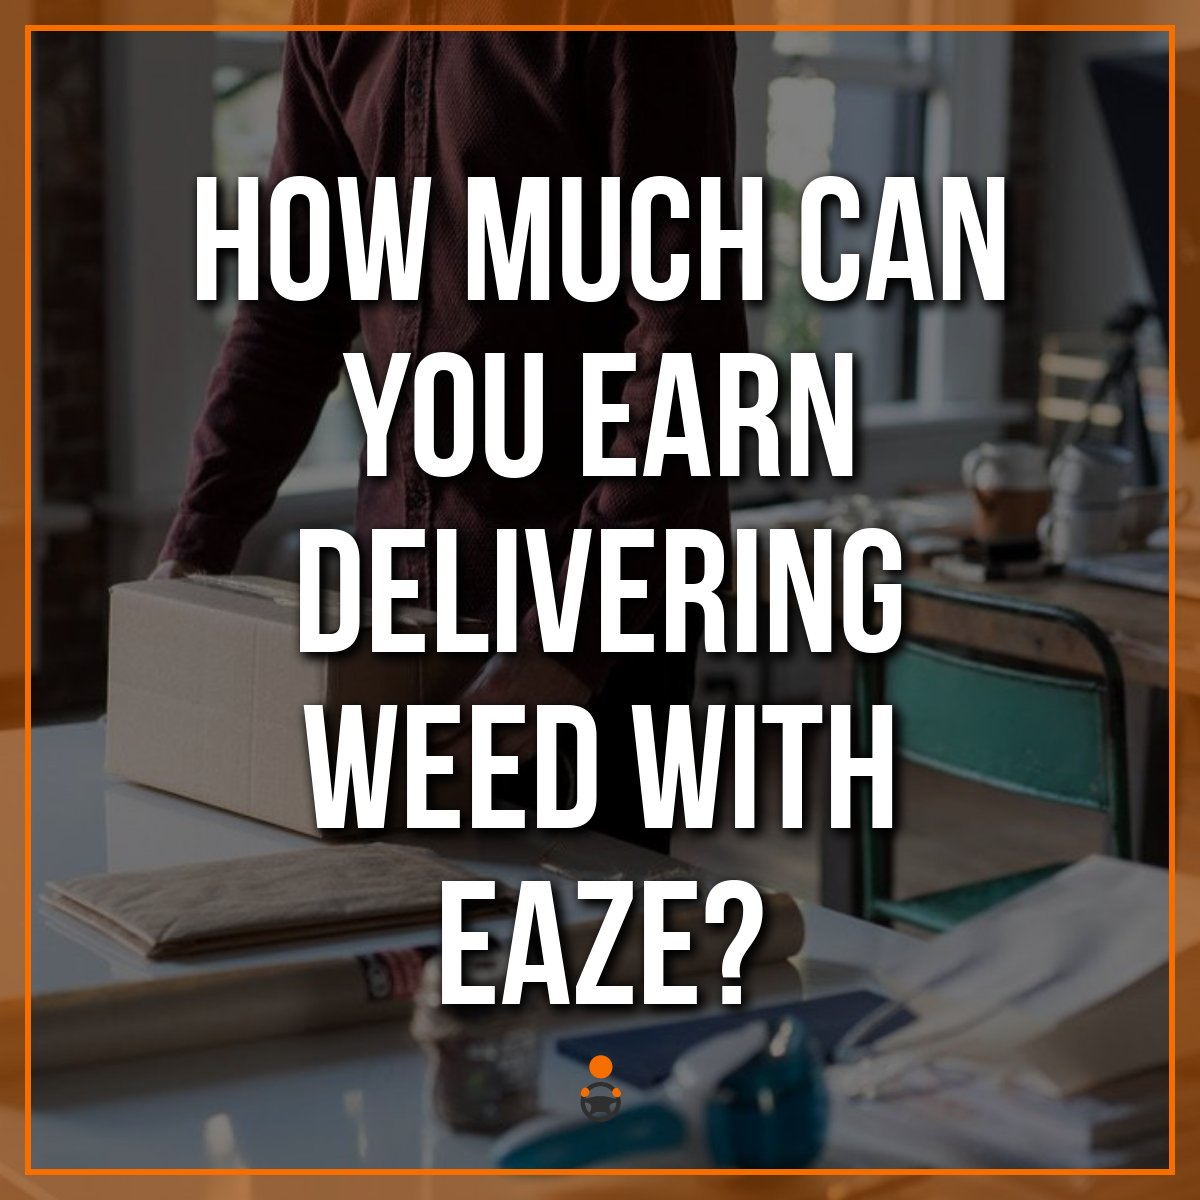 How Much Can You Earn Delivering Weed with Eaze?